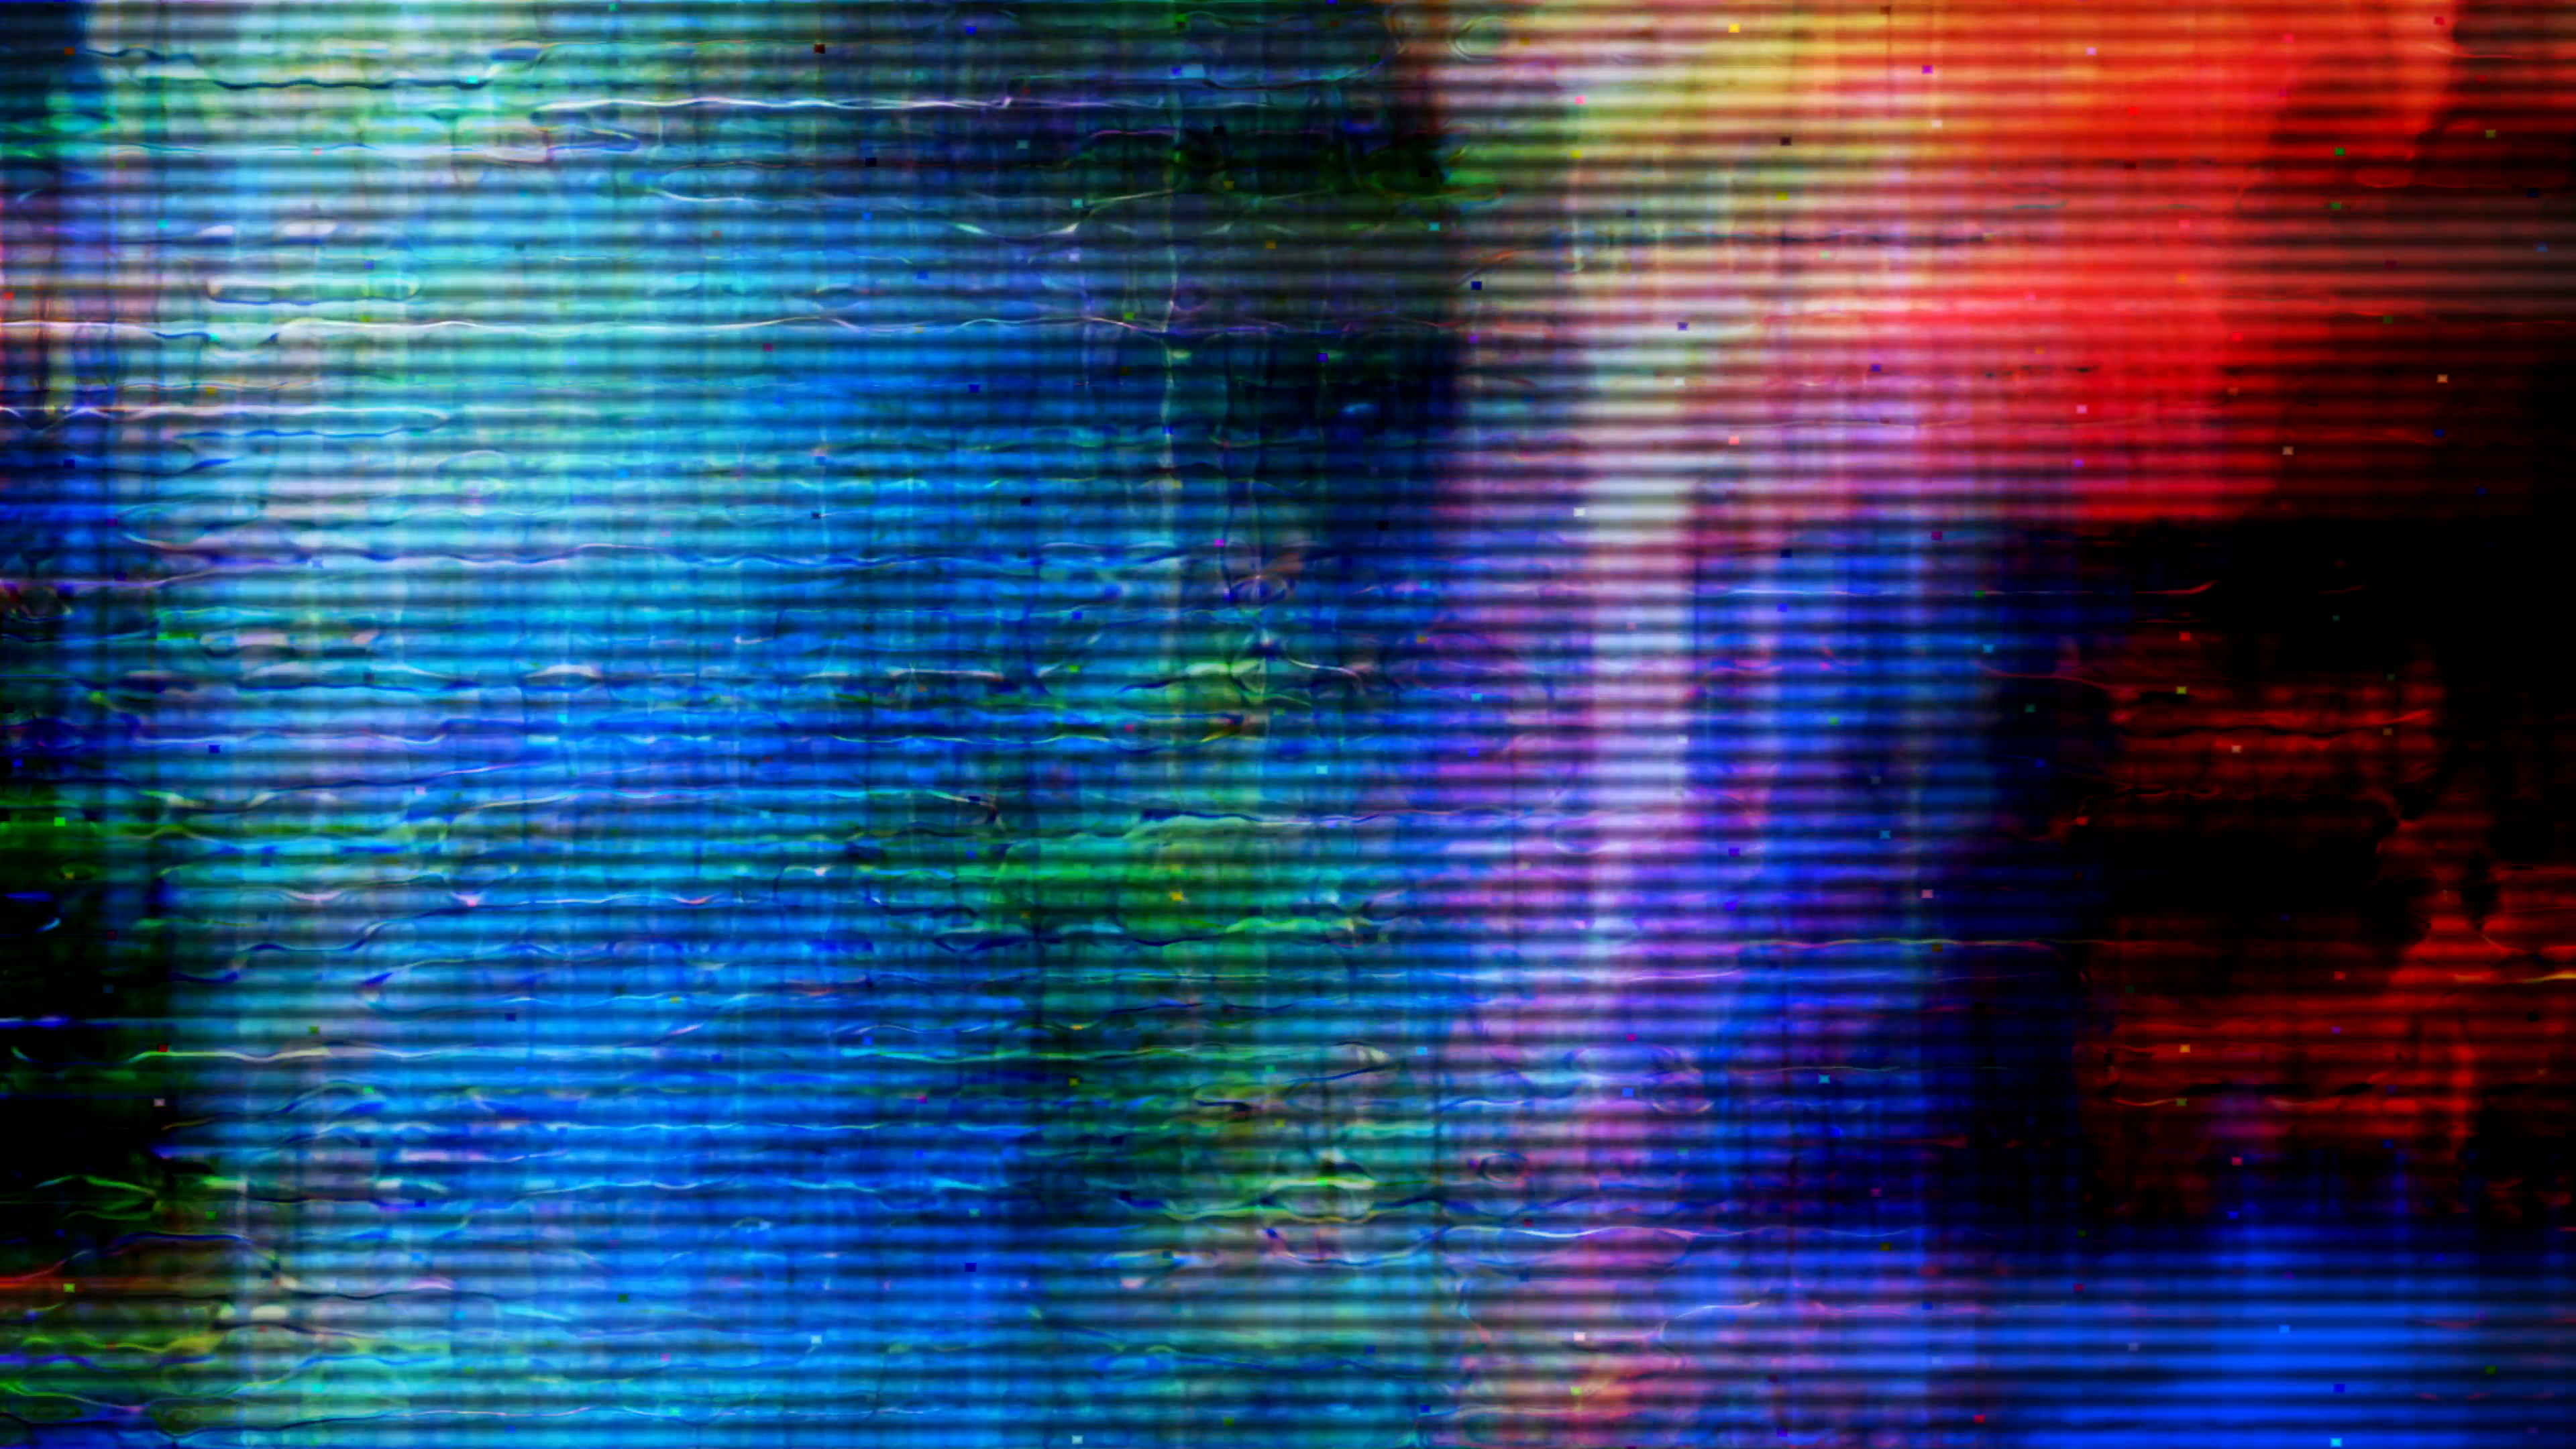 Video Flux 040: TV screen pixels fluctuate with color and video ...